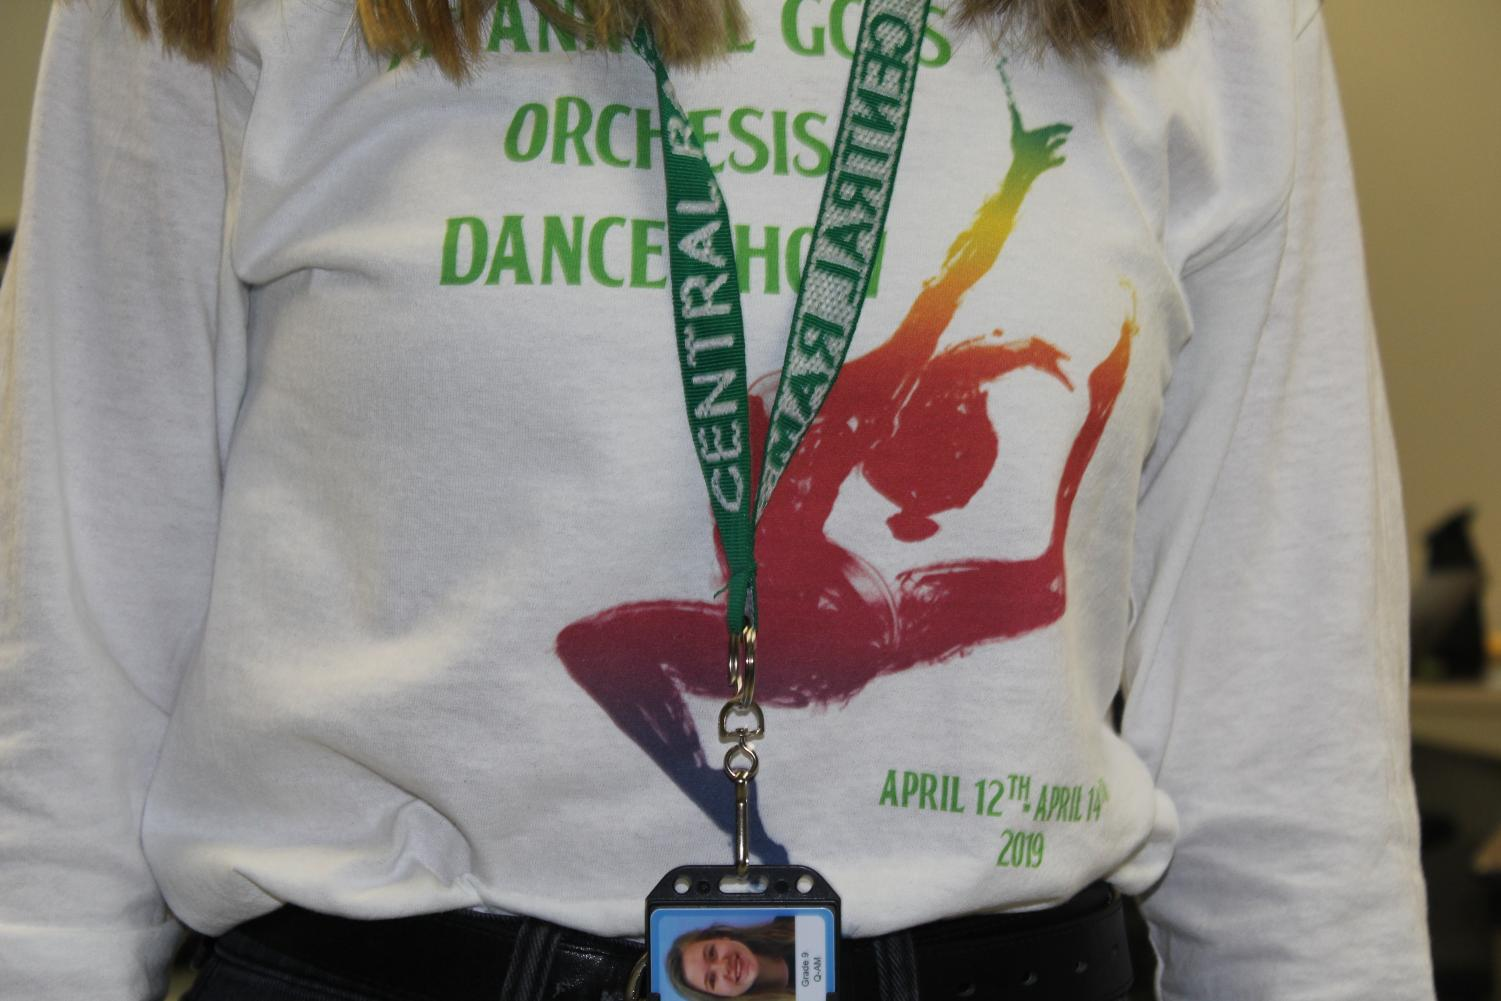 Hayley Breines is pictured wearing her lanyard and ID. Photo by Caden Moe